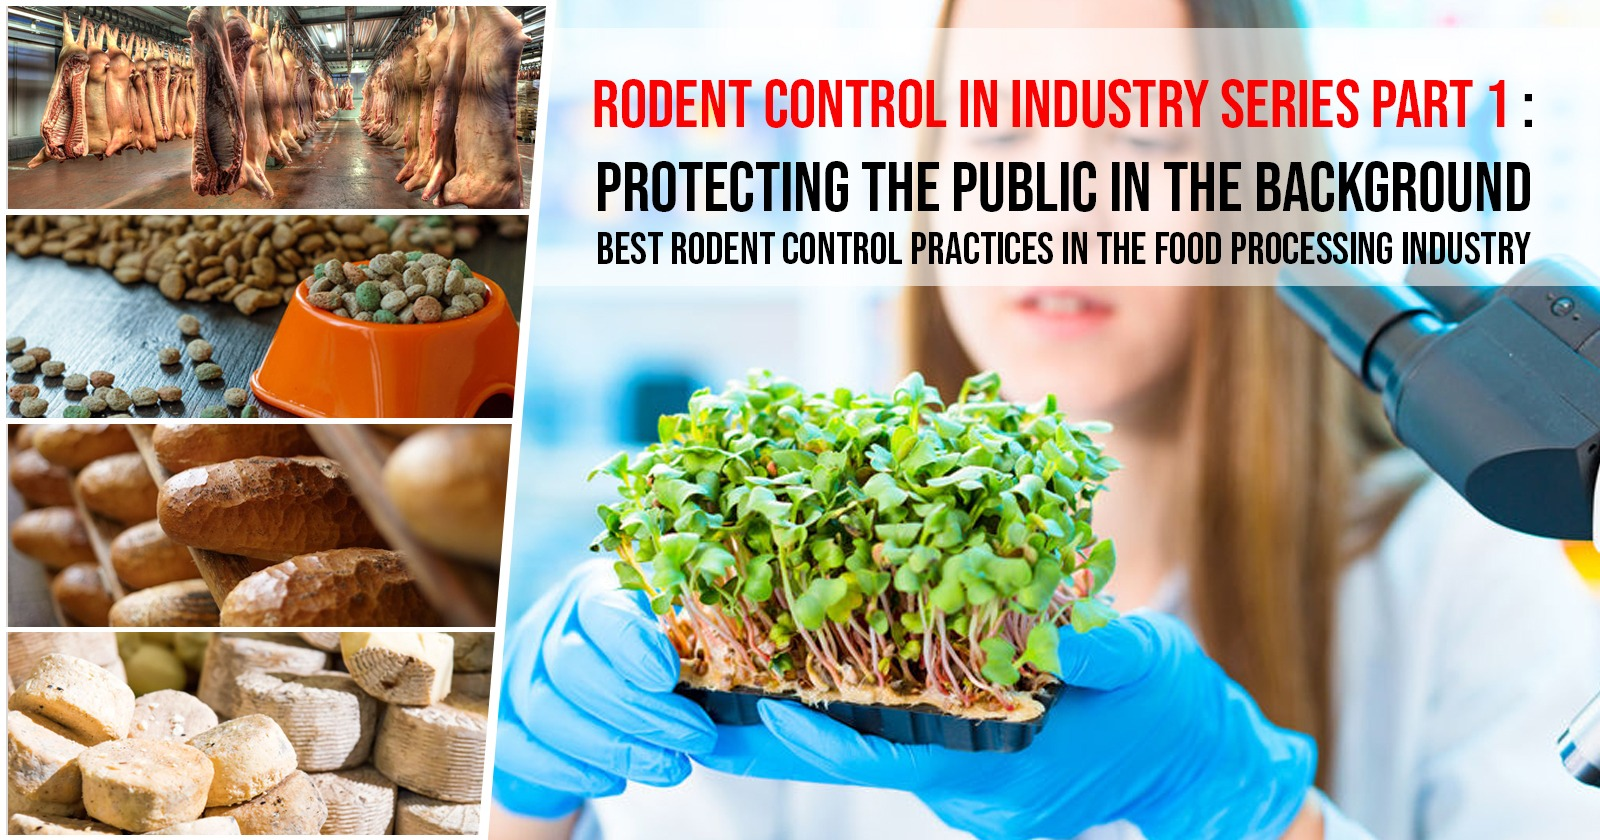 Rodent Control in Industry Series Part 1: Protecting the